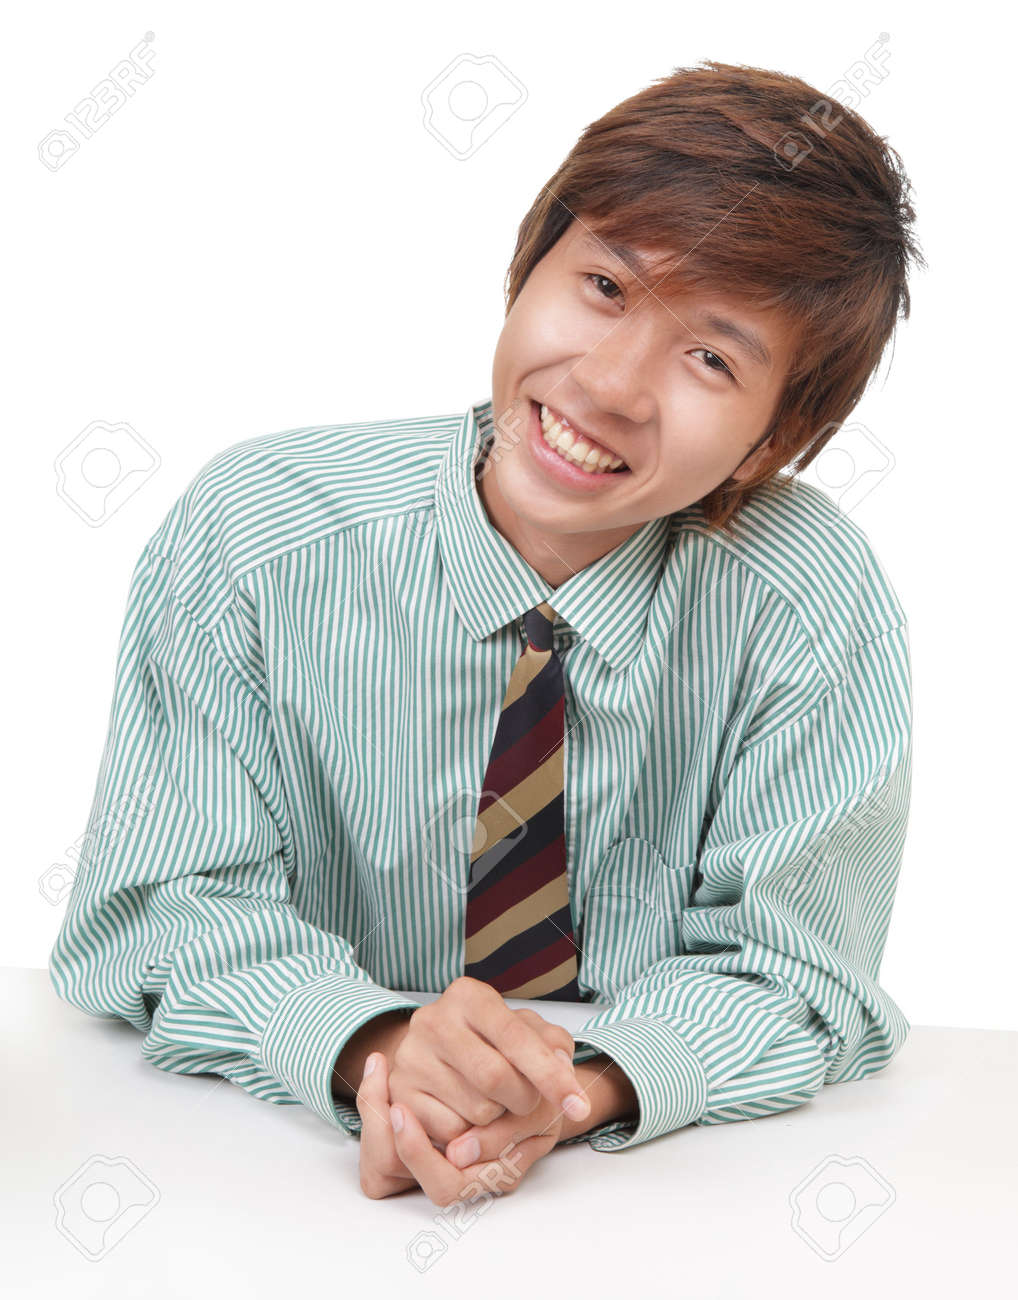 Friendly smiling young Asian or Korean businessman, salesman or consultant, sitting at his desk and leaning over like convincing a customer. Isolated over white. - 6186285